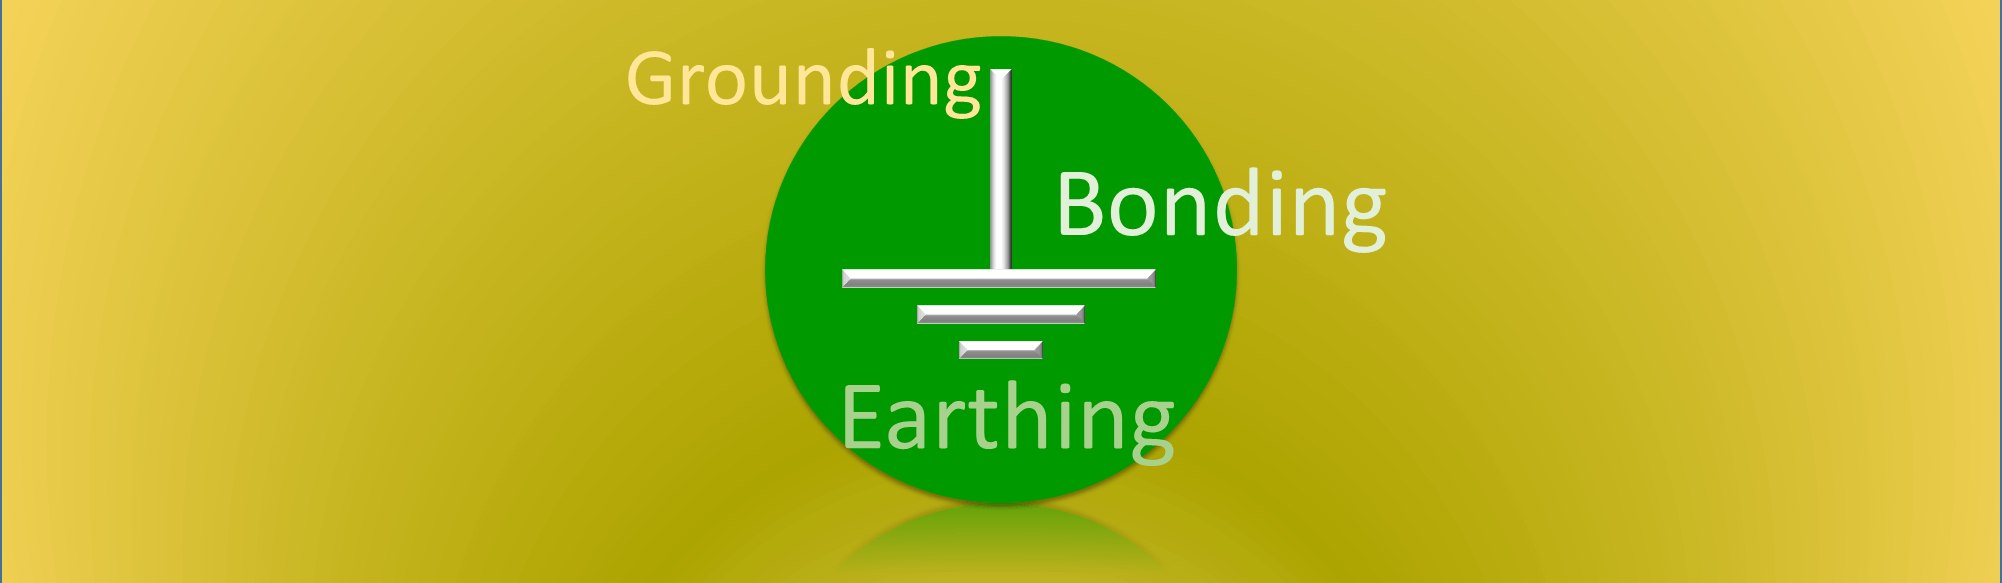 Data Centre Earthing Grounding and Bonding